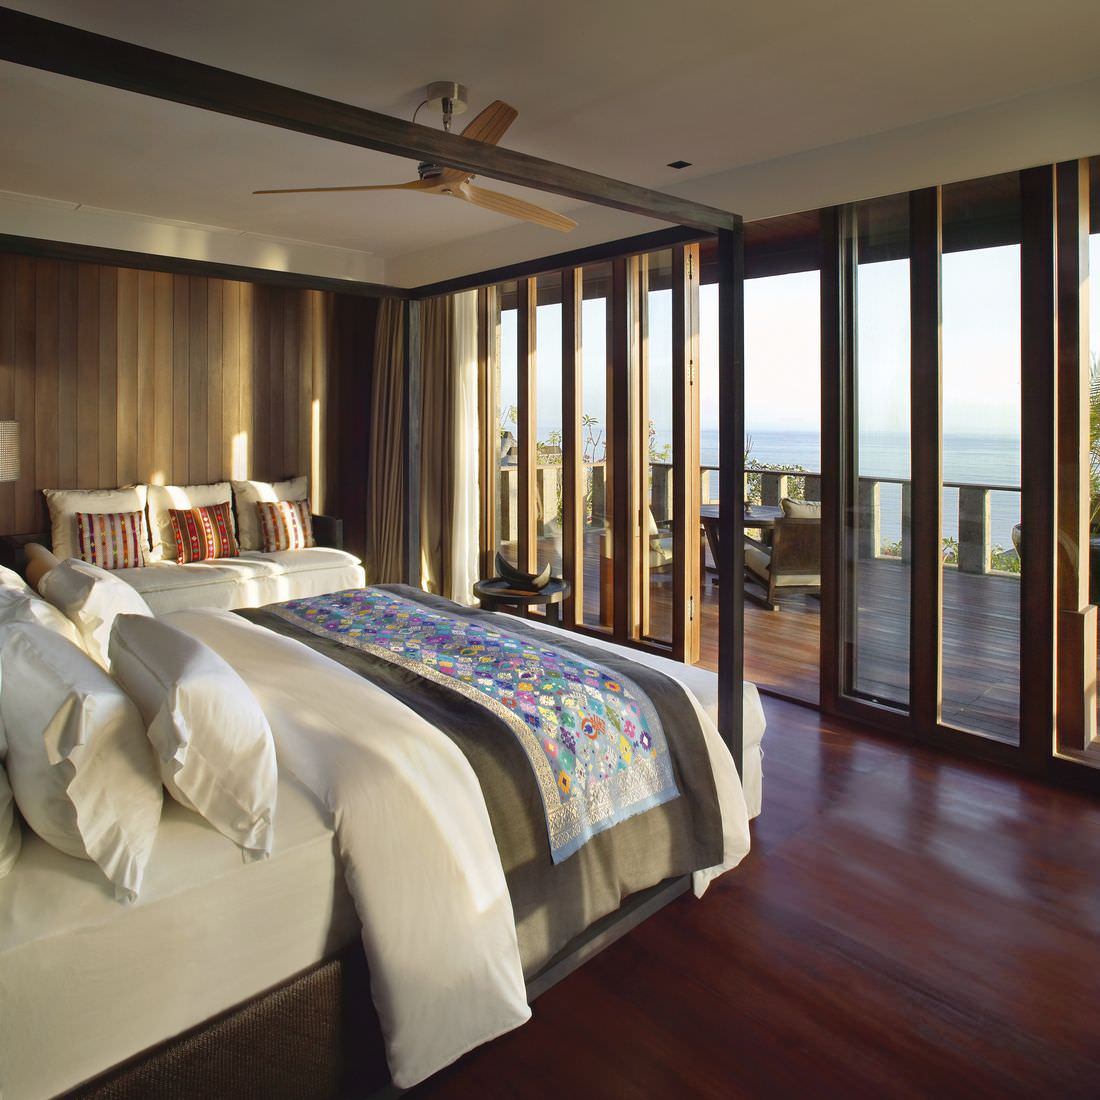 Image Result For Bali Hotel Rooma